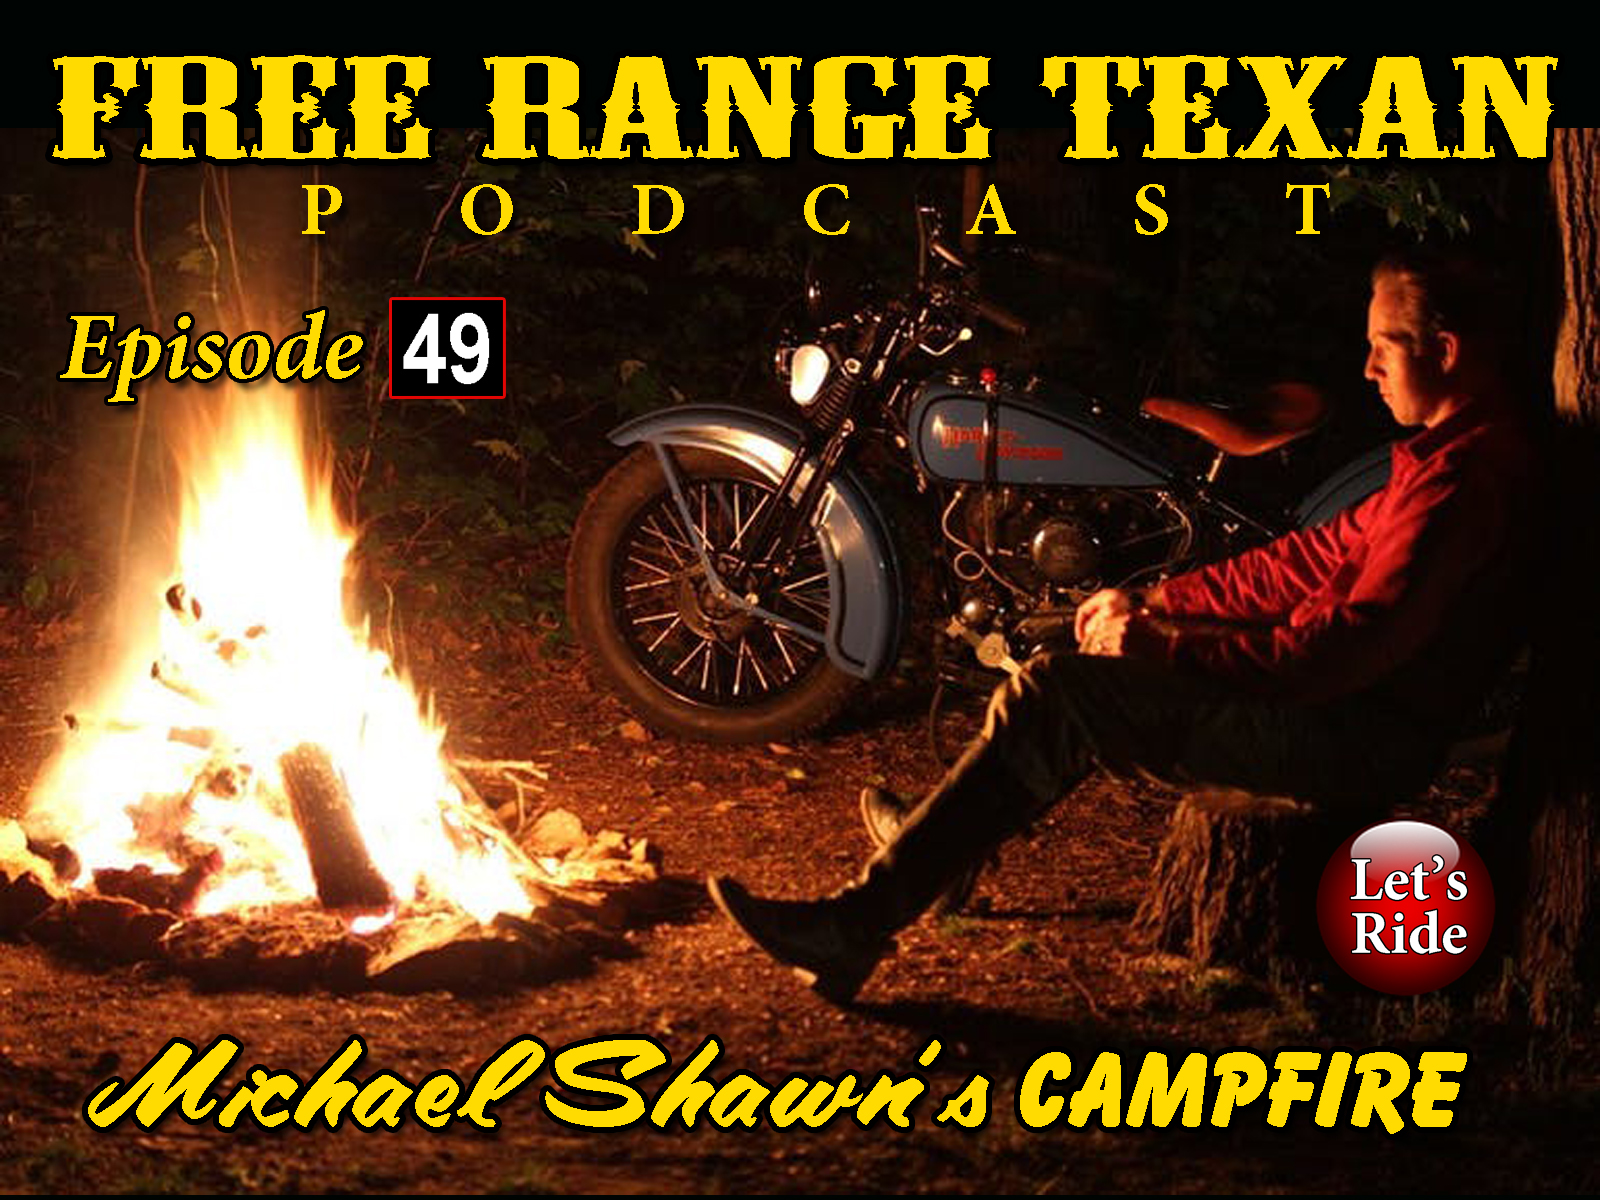 Free Range Texan Episode 49